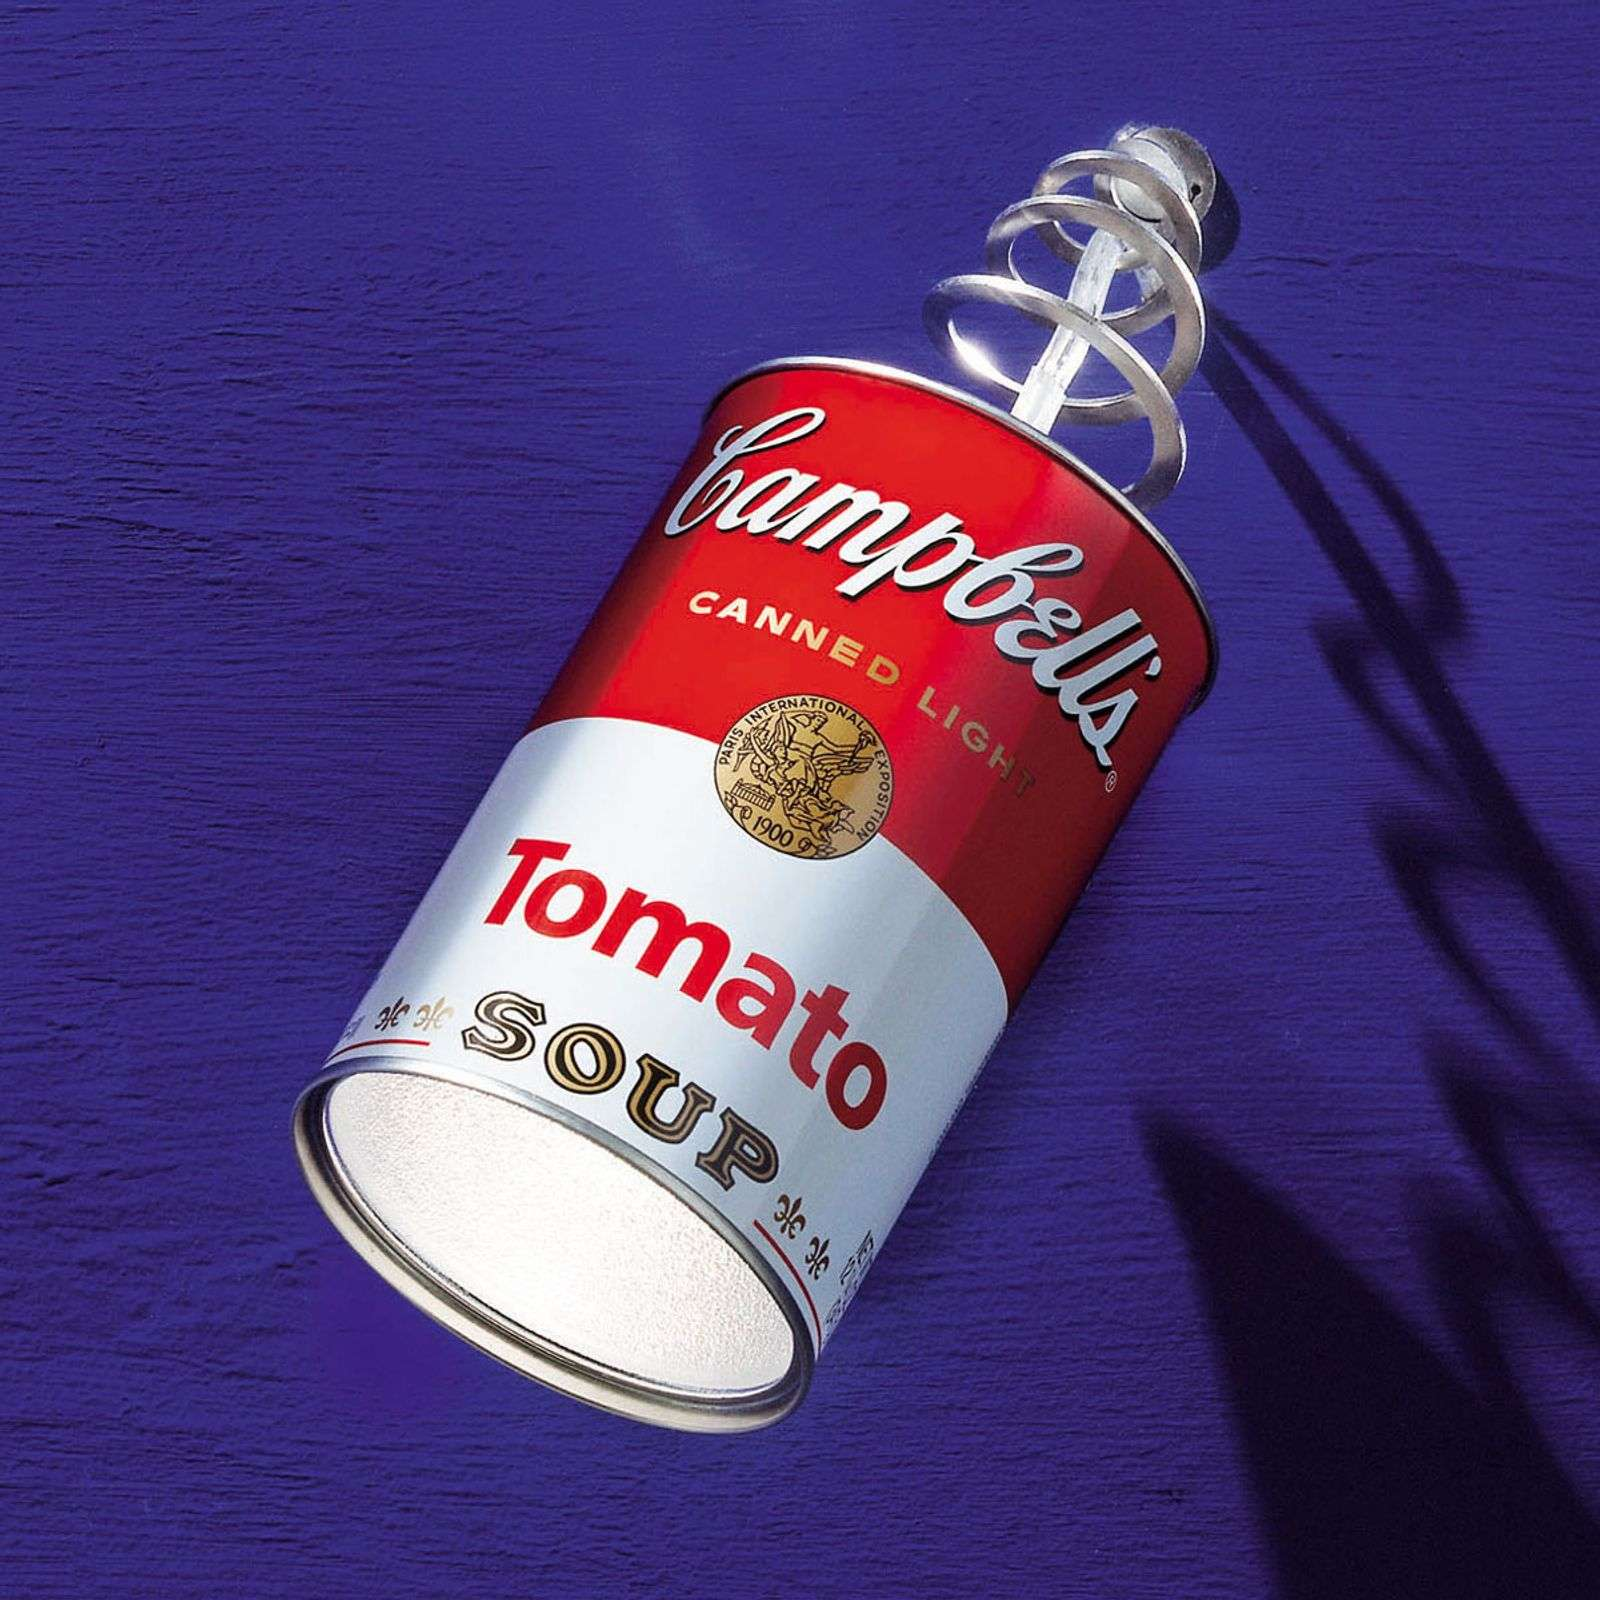 Canned Light: lámpara colgante y lámpara de pared